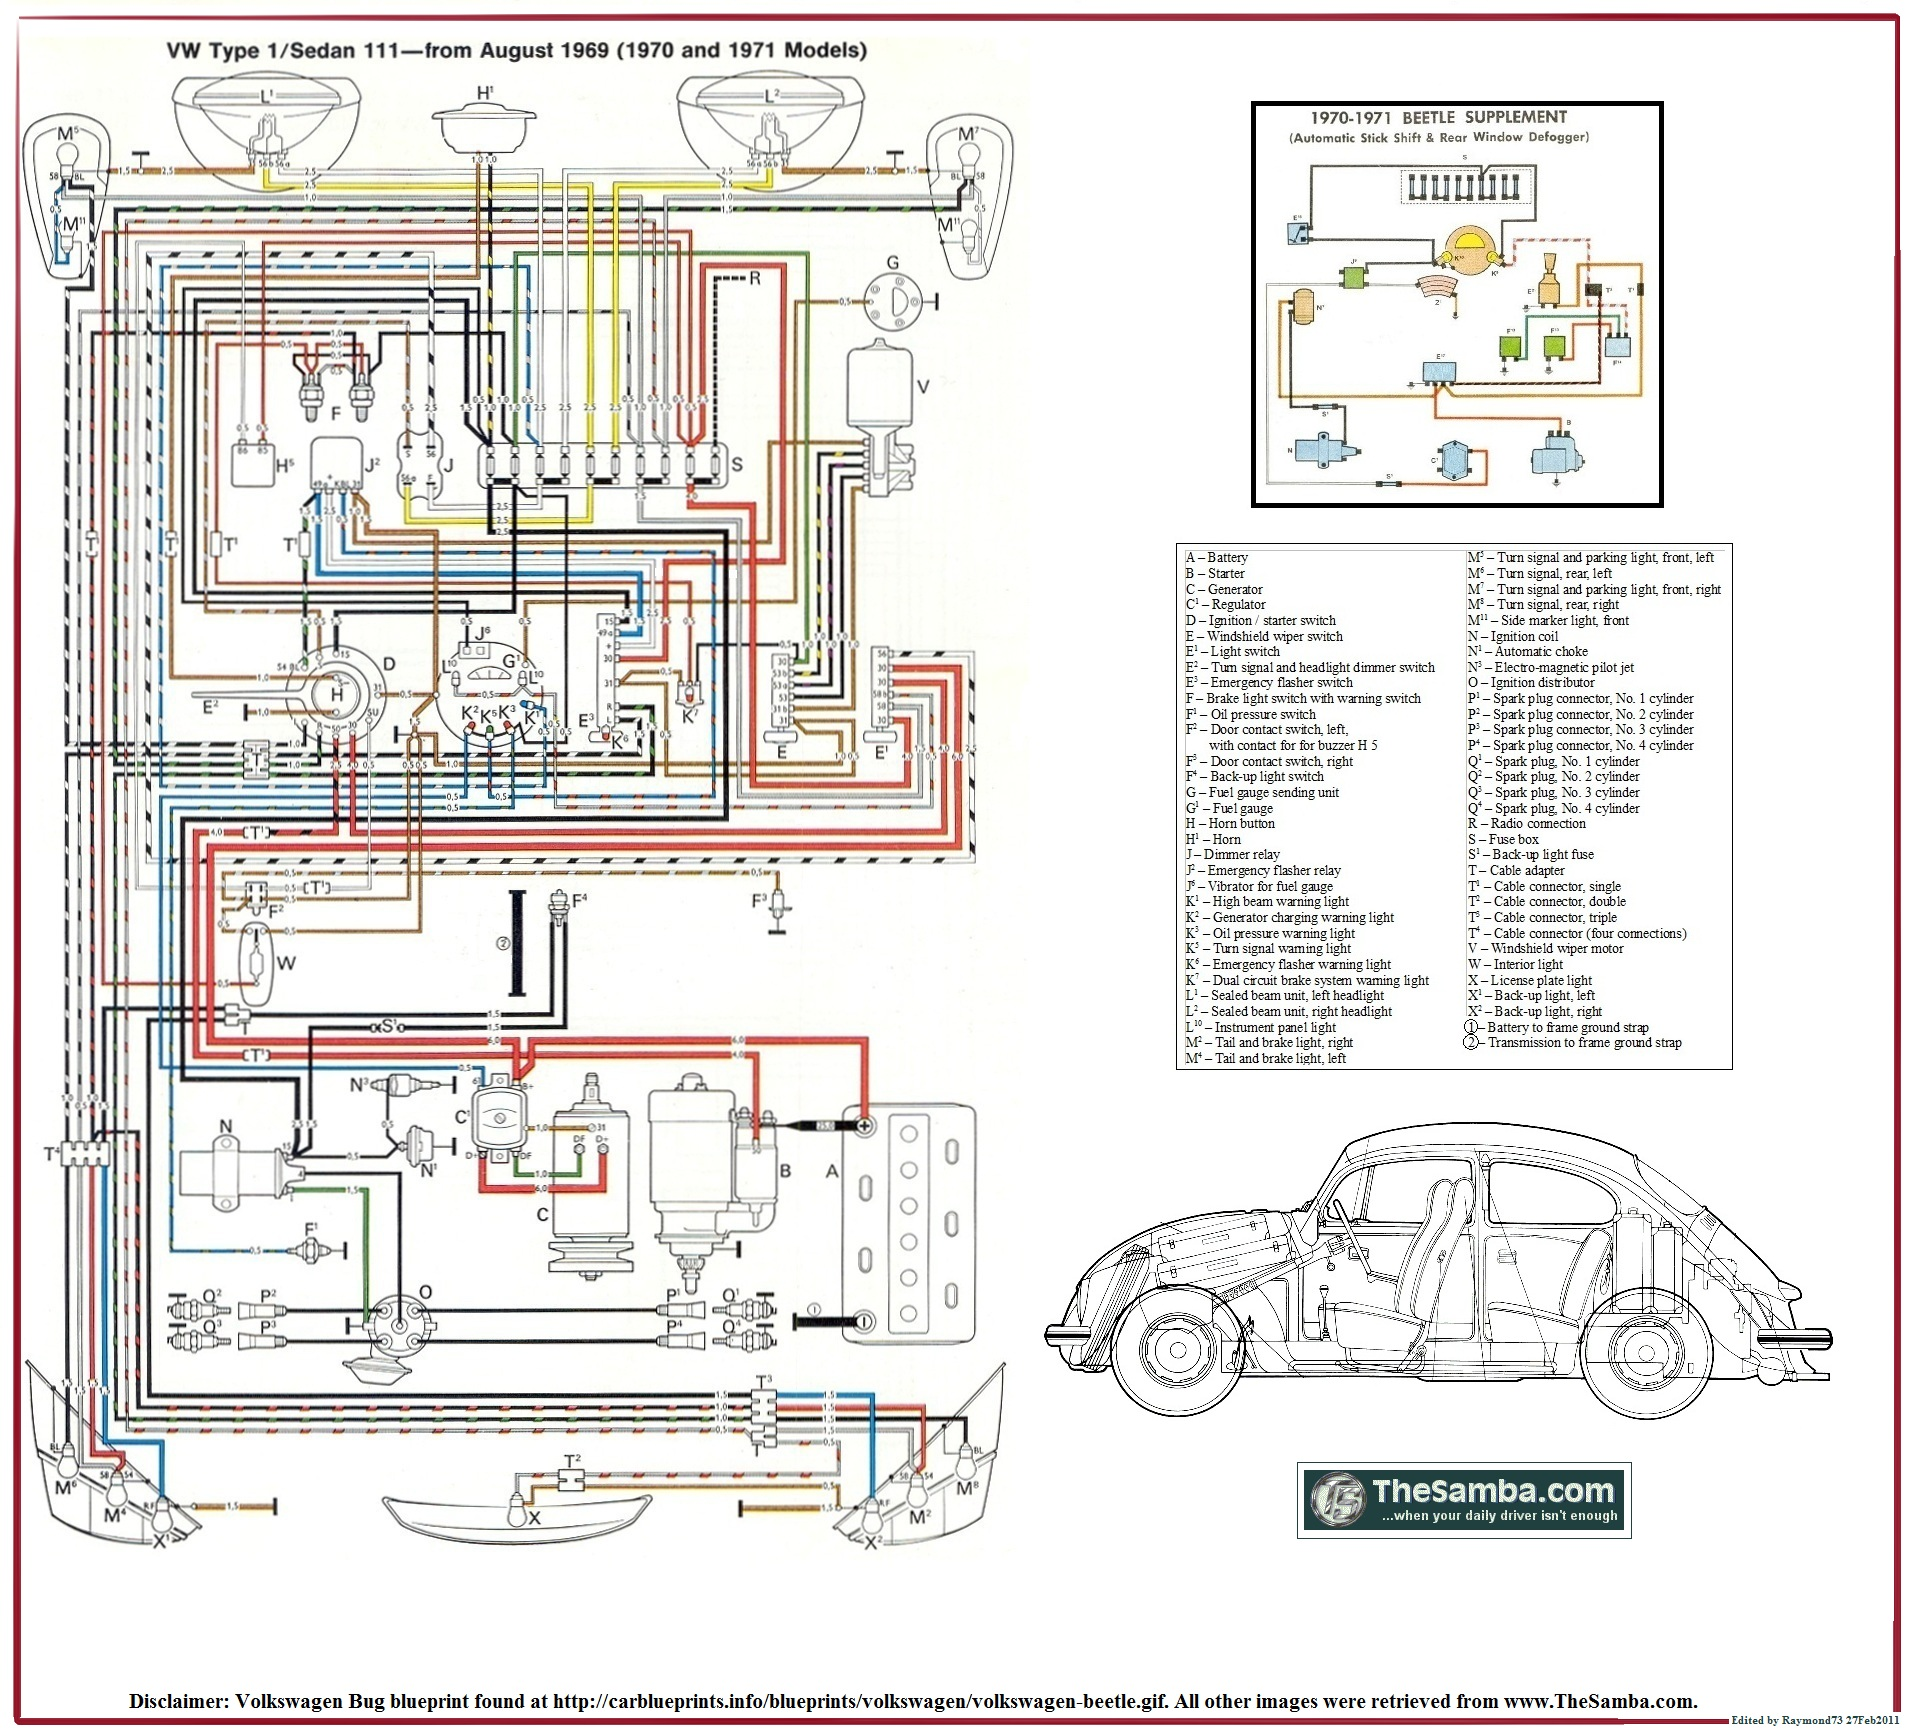 vw beetle wiring diagram uk vw wiring diagrams online beetle wiring diagram uk 1970 wiring diagrams online